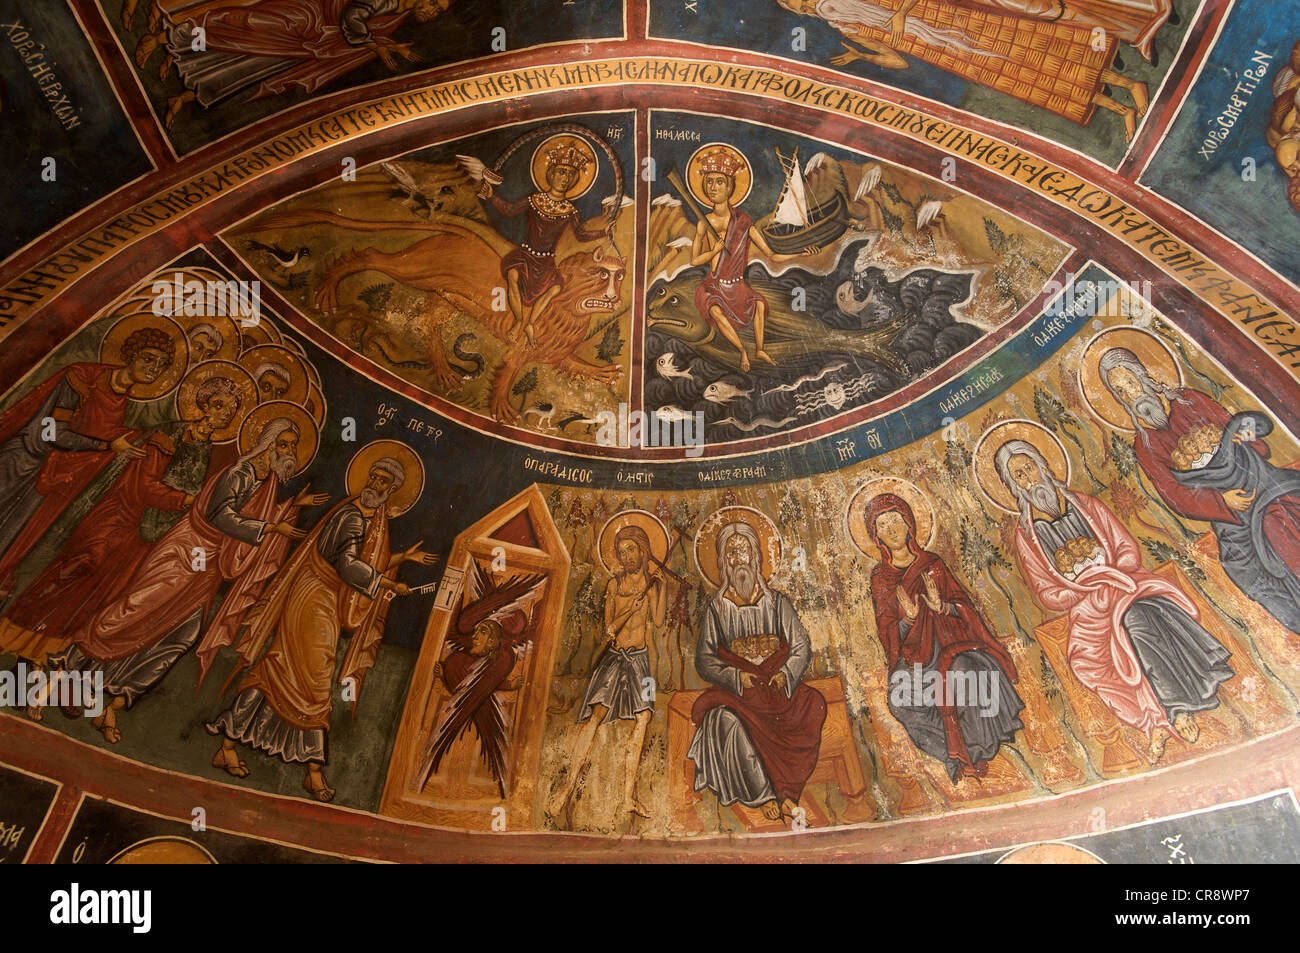 900 year old wall paintings in Panagia Forviotissa, a barn roof church in Asinou, Troodos Mountains, Southern Cyprus, - Stock Image